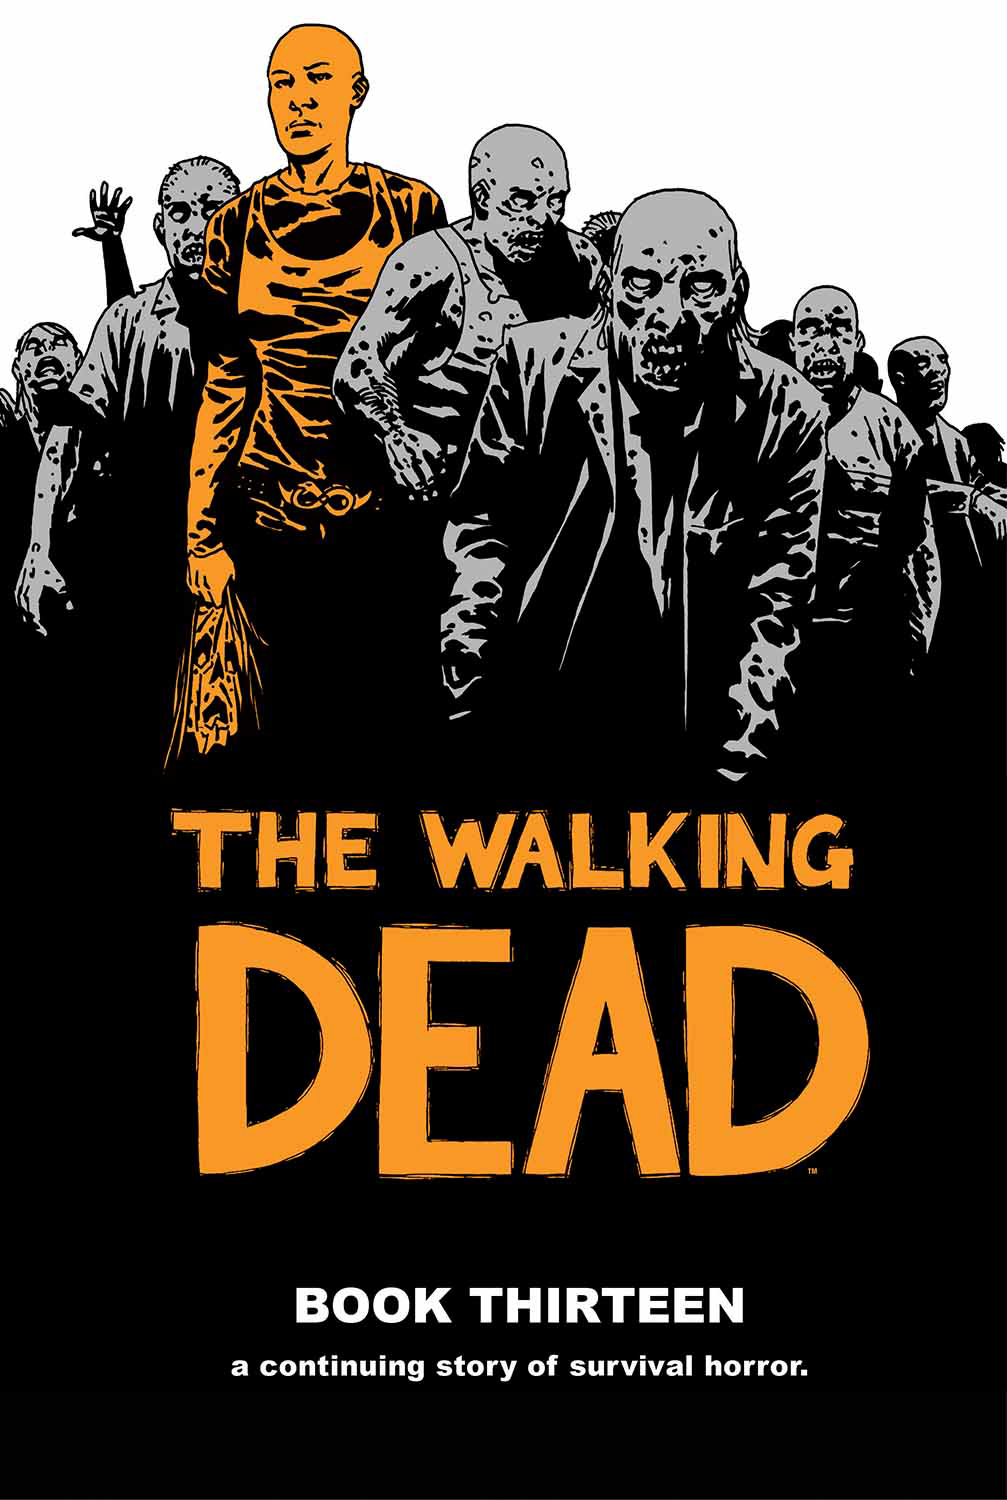 WALKING DEAD HC VOL 13 (MR)